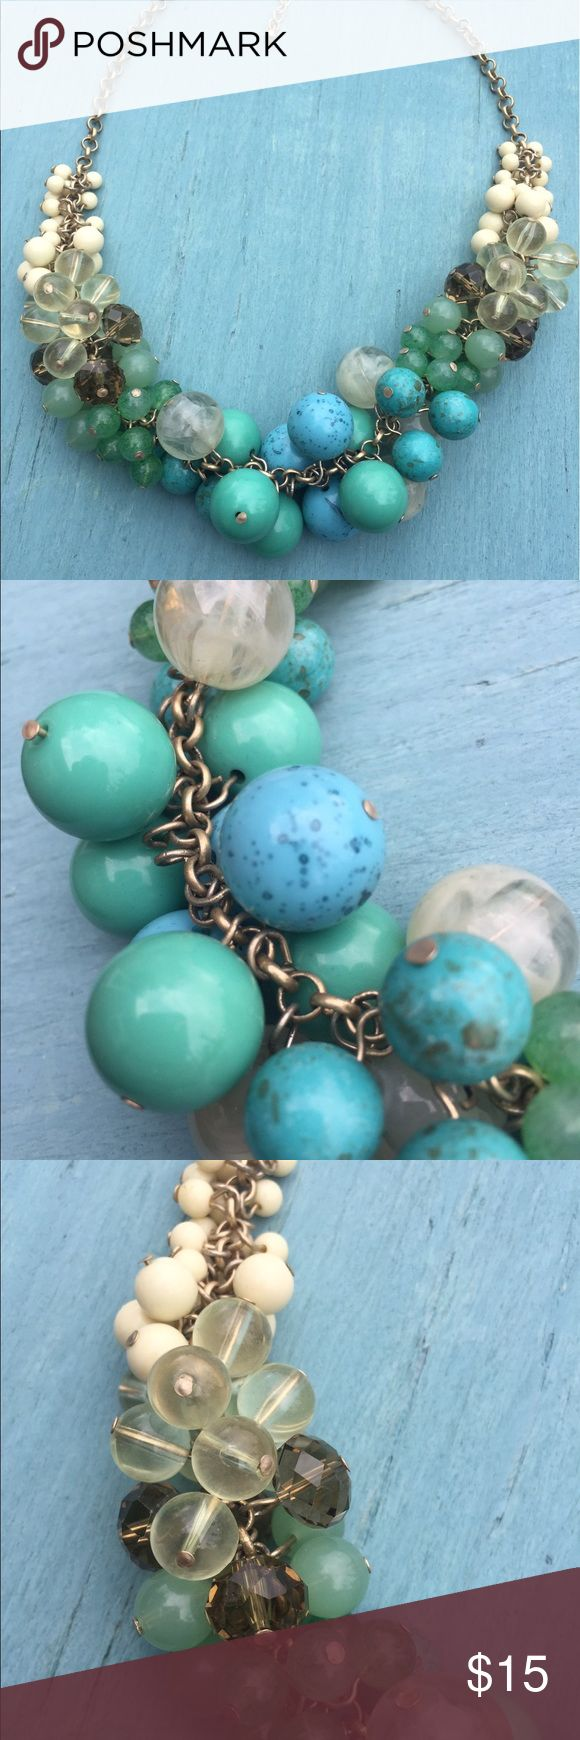 Lia Sophia blue and green ombré necklace Lia Sophia blue and green ombré balls necklace Lia Sophia Jewelry Necklaces